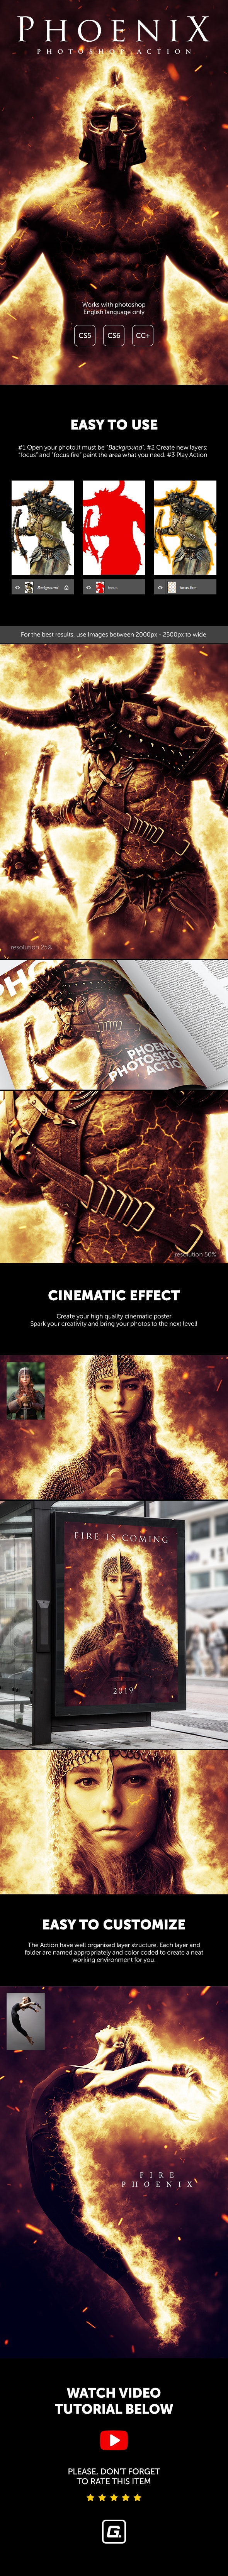 Phoenix - Photoshop Action - Photo Effects Actions